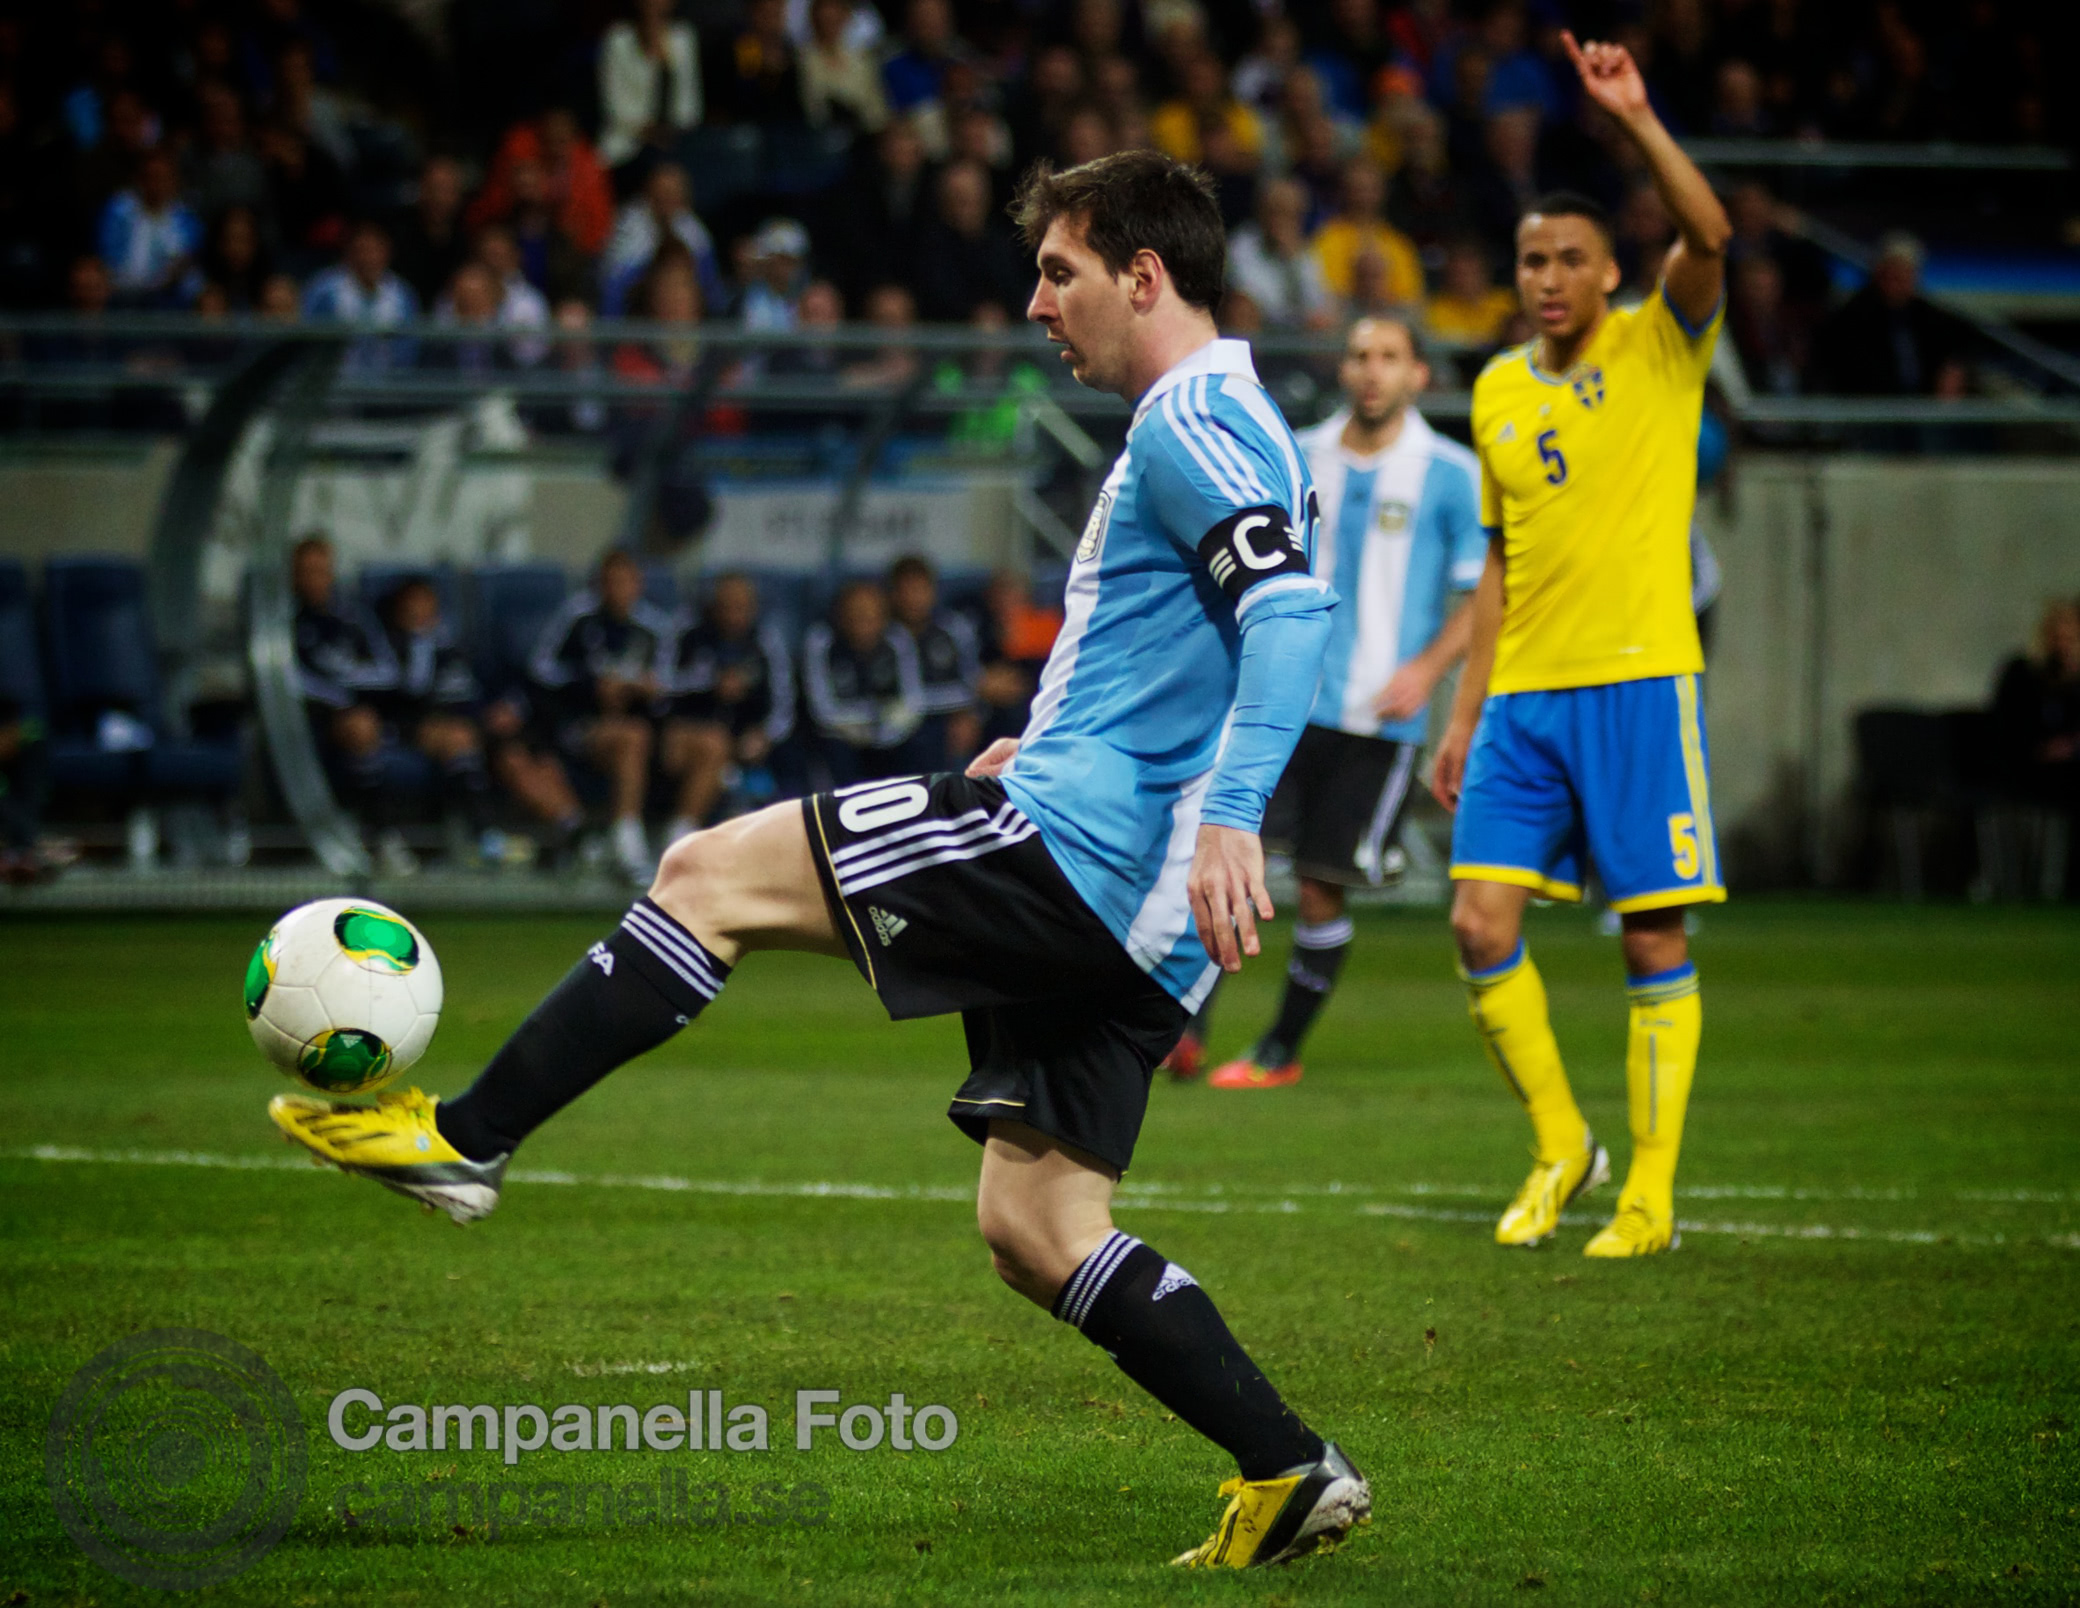 Sweden takes on Argentina - 24 of 35